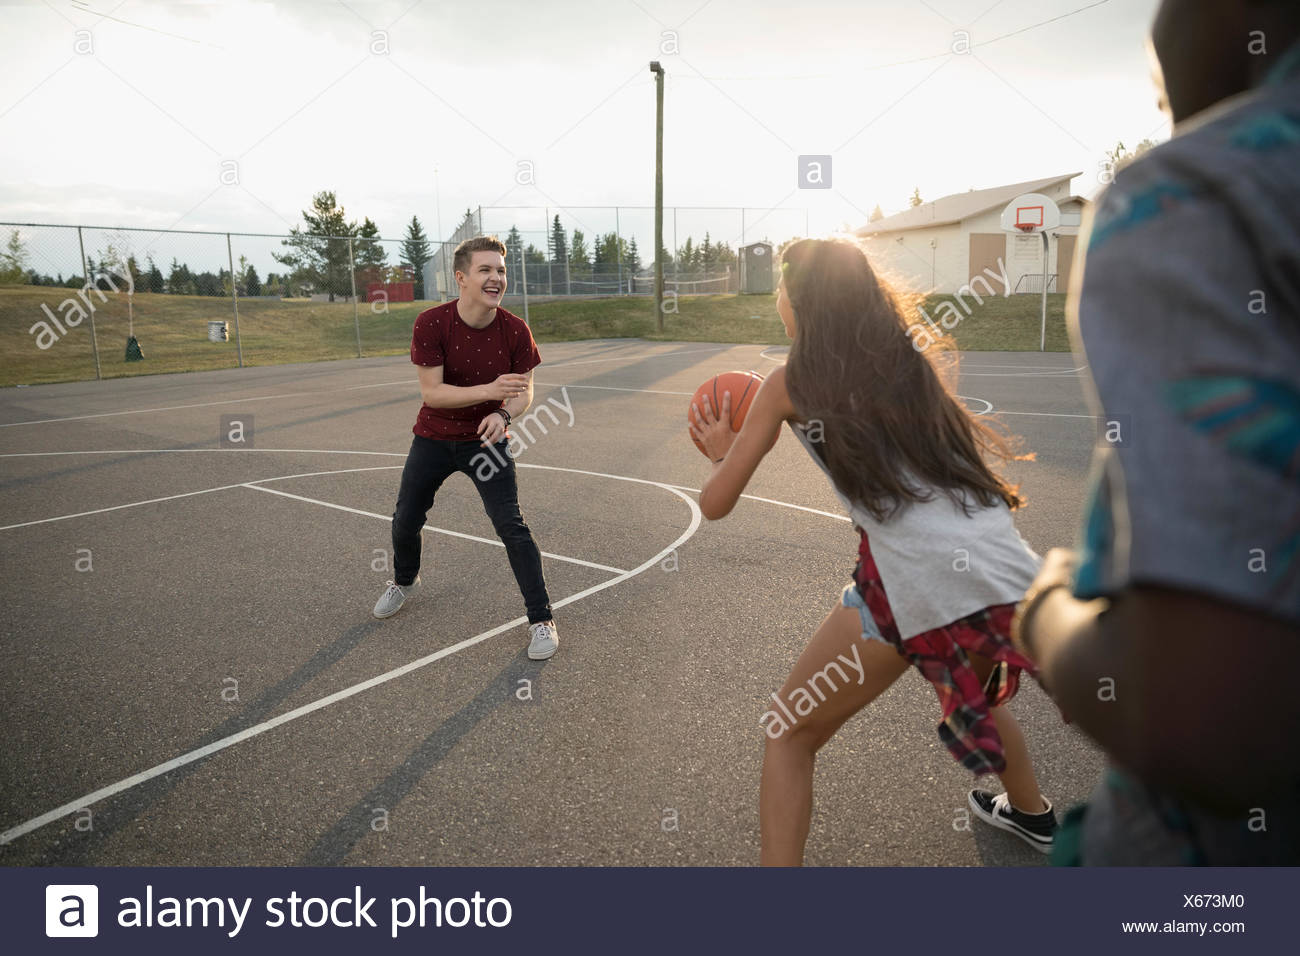 Teenage friends playing basketball on outdoor basketball court Stock Photo